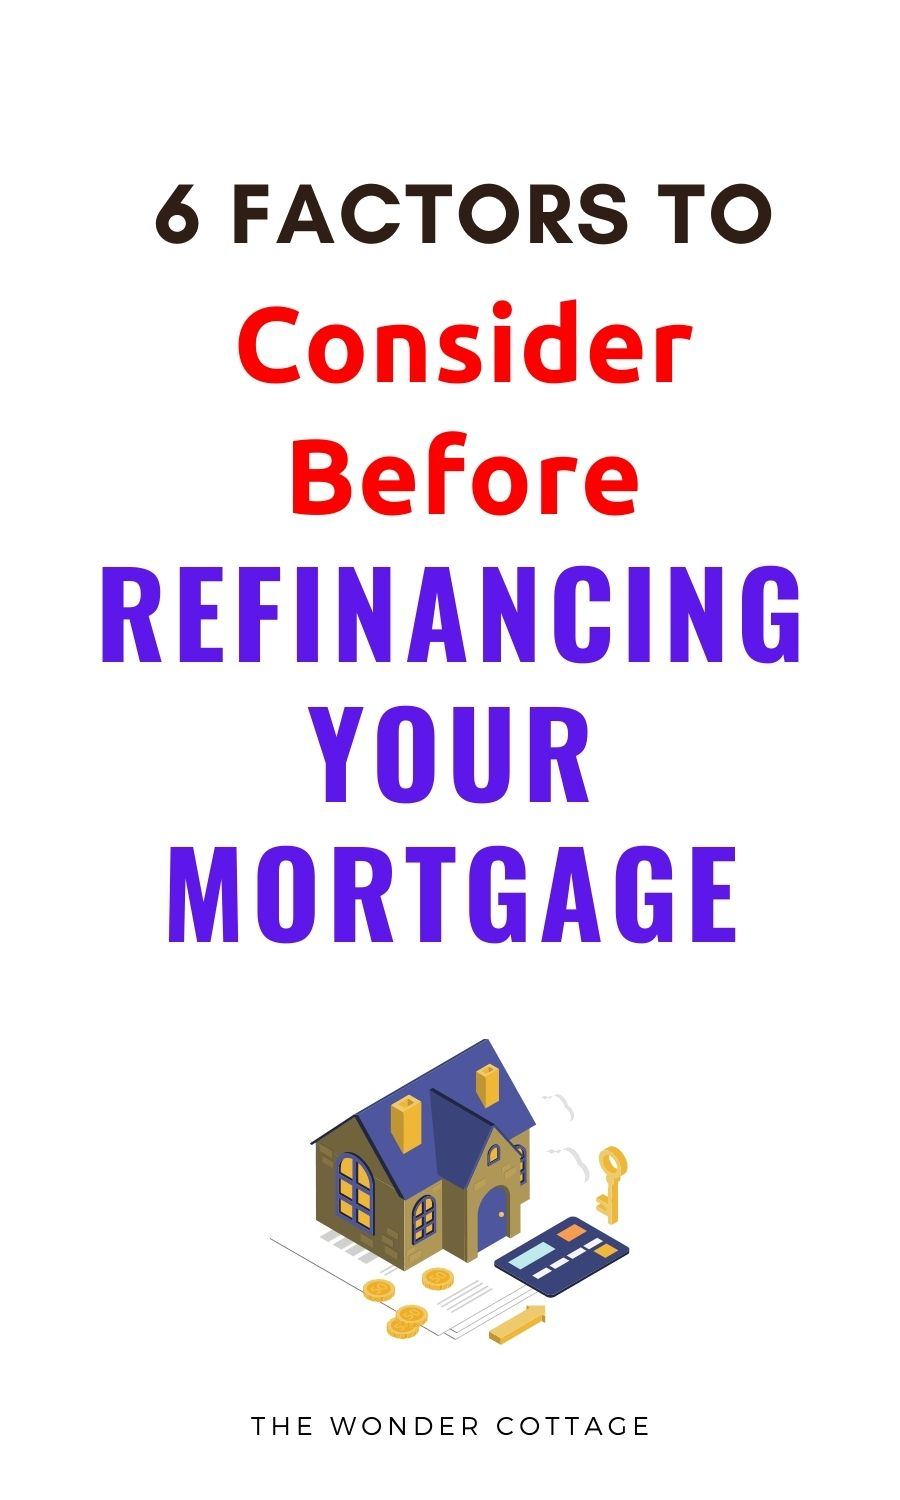 6 factors to consider before refinancing your mortgage